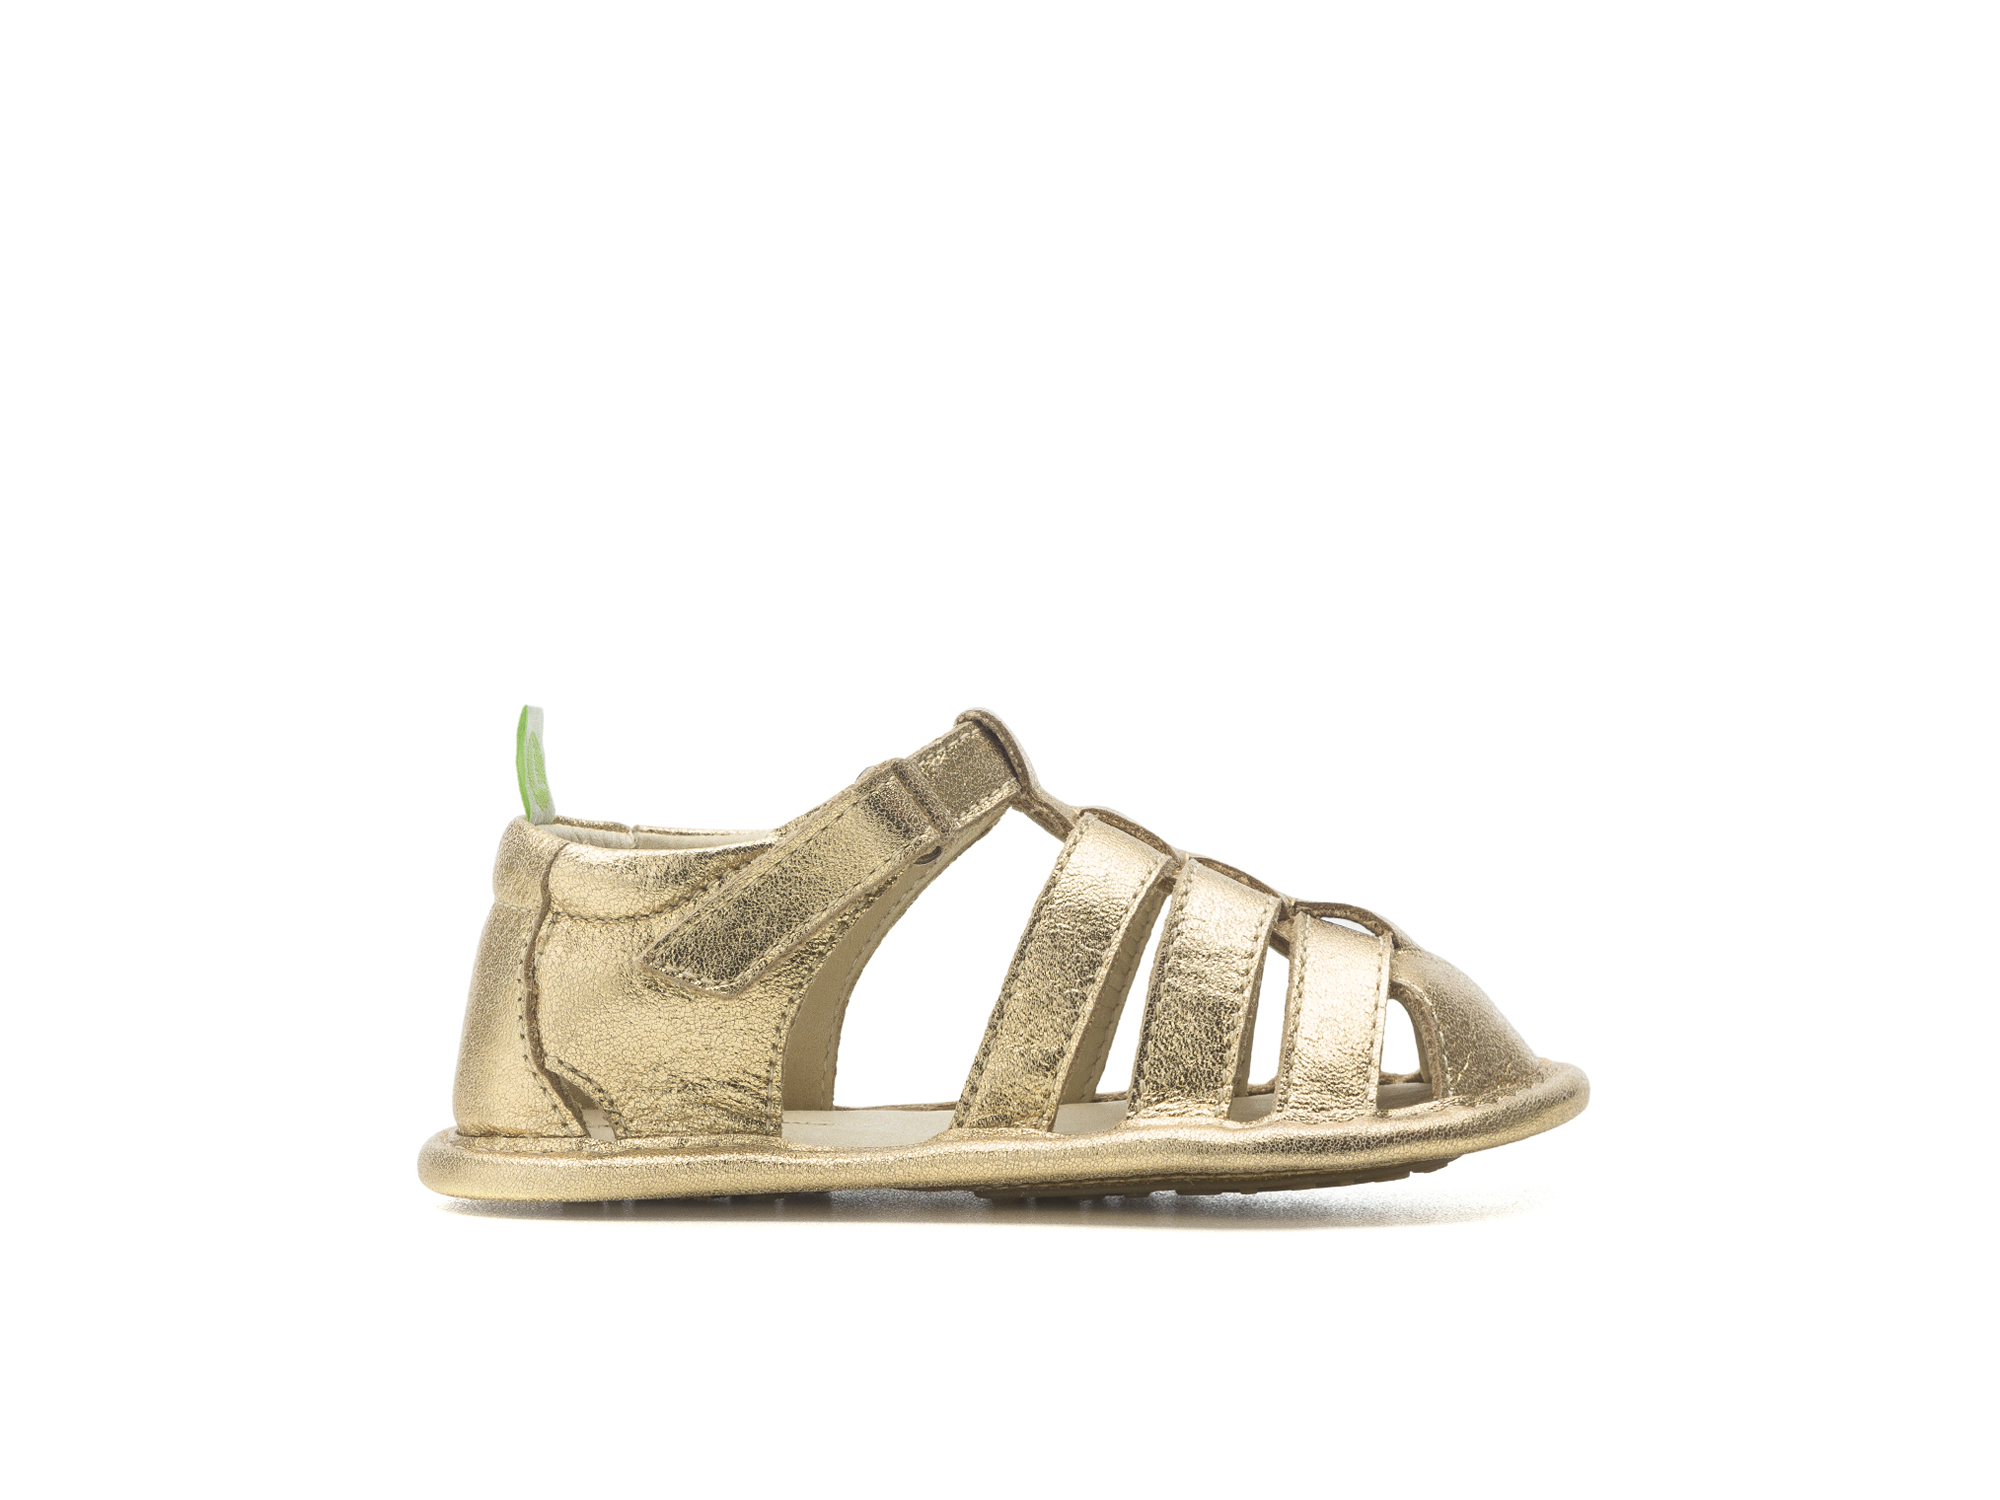 Sandal Minty Golden Shine Baby for ages 0 to 2 years - 1